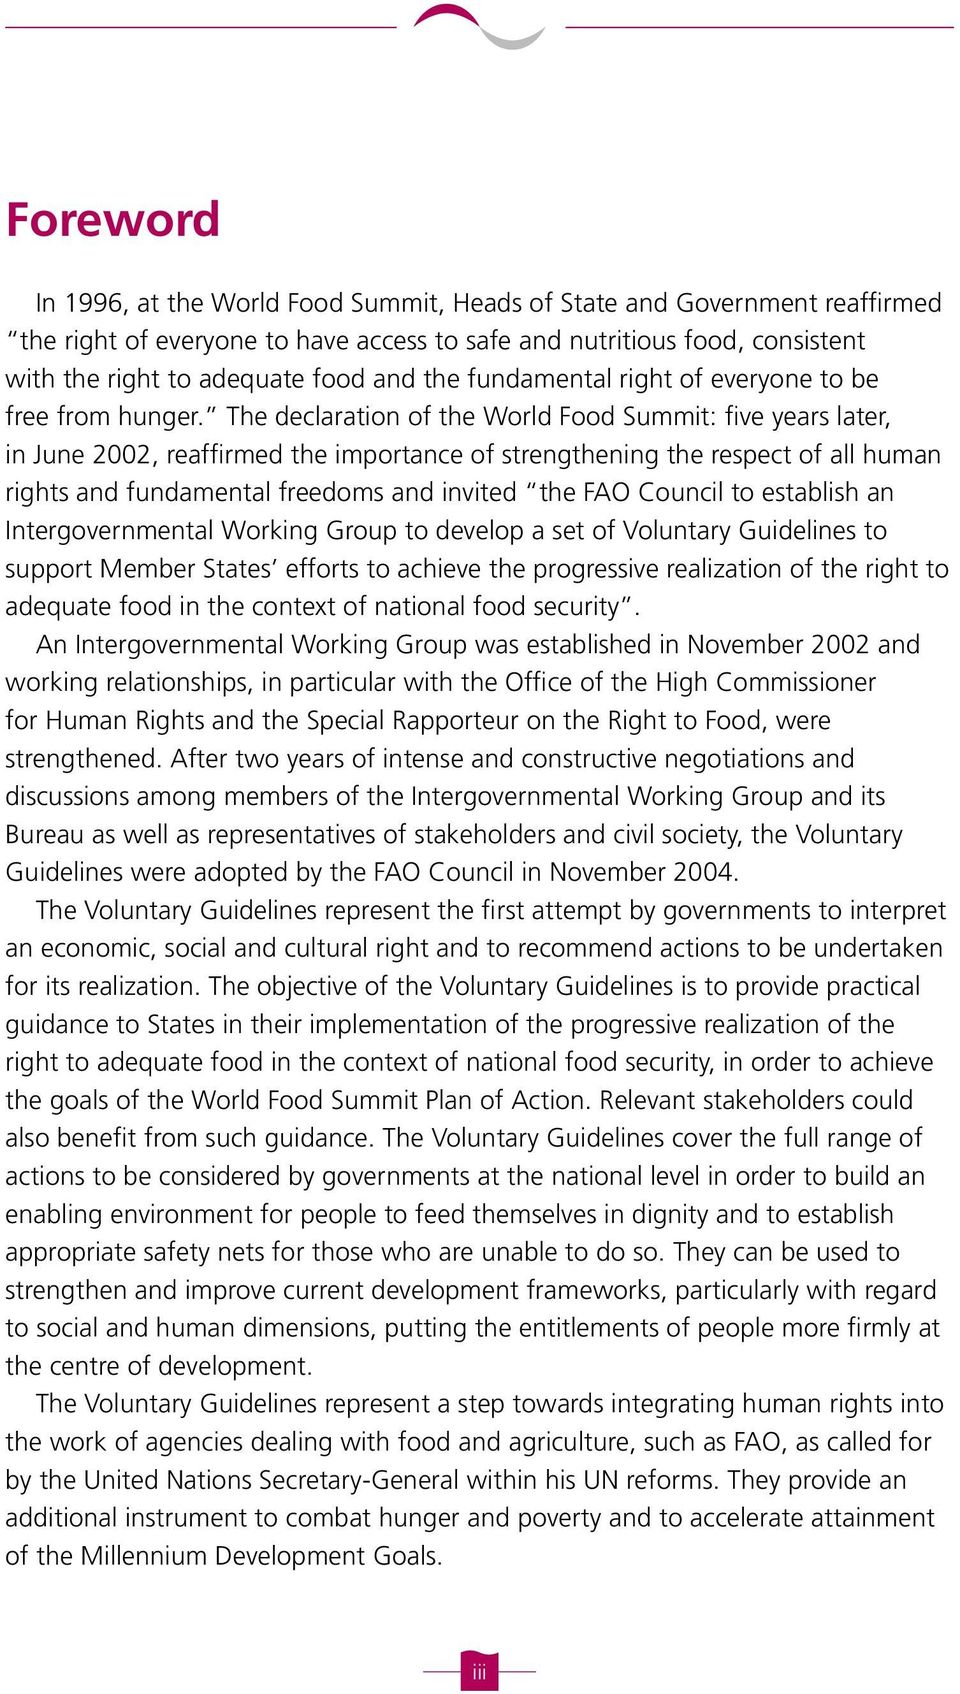 The declaration of the World Food Summit: five years later, in June 2002, reaffirmed the importance of strengthening the respect of all human rights and fundamental freedoms and invited the FAO